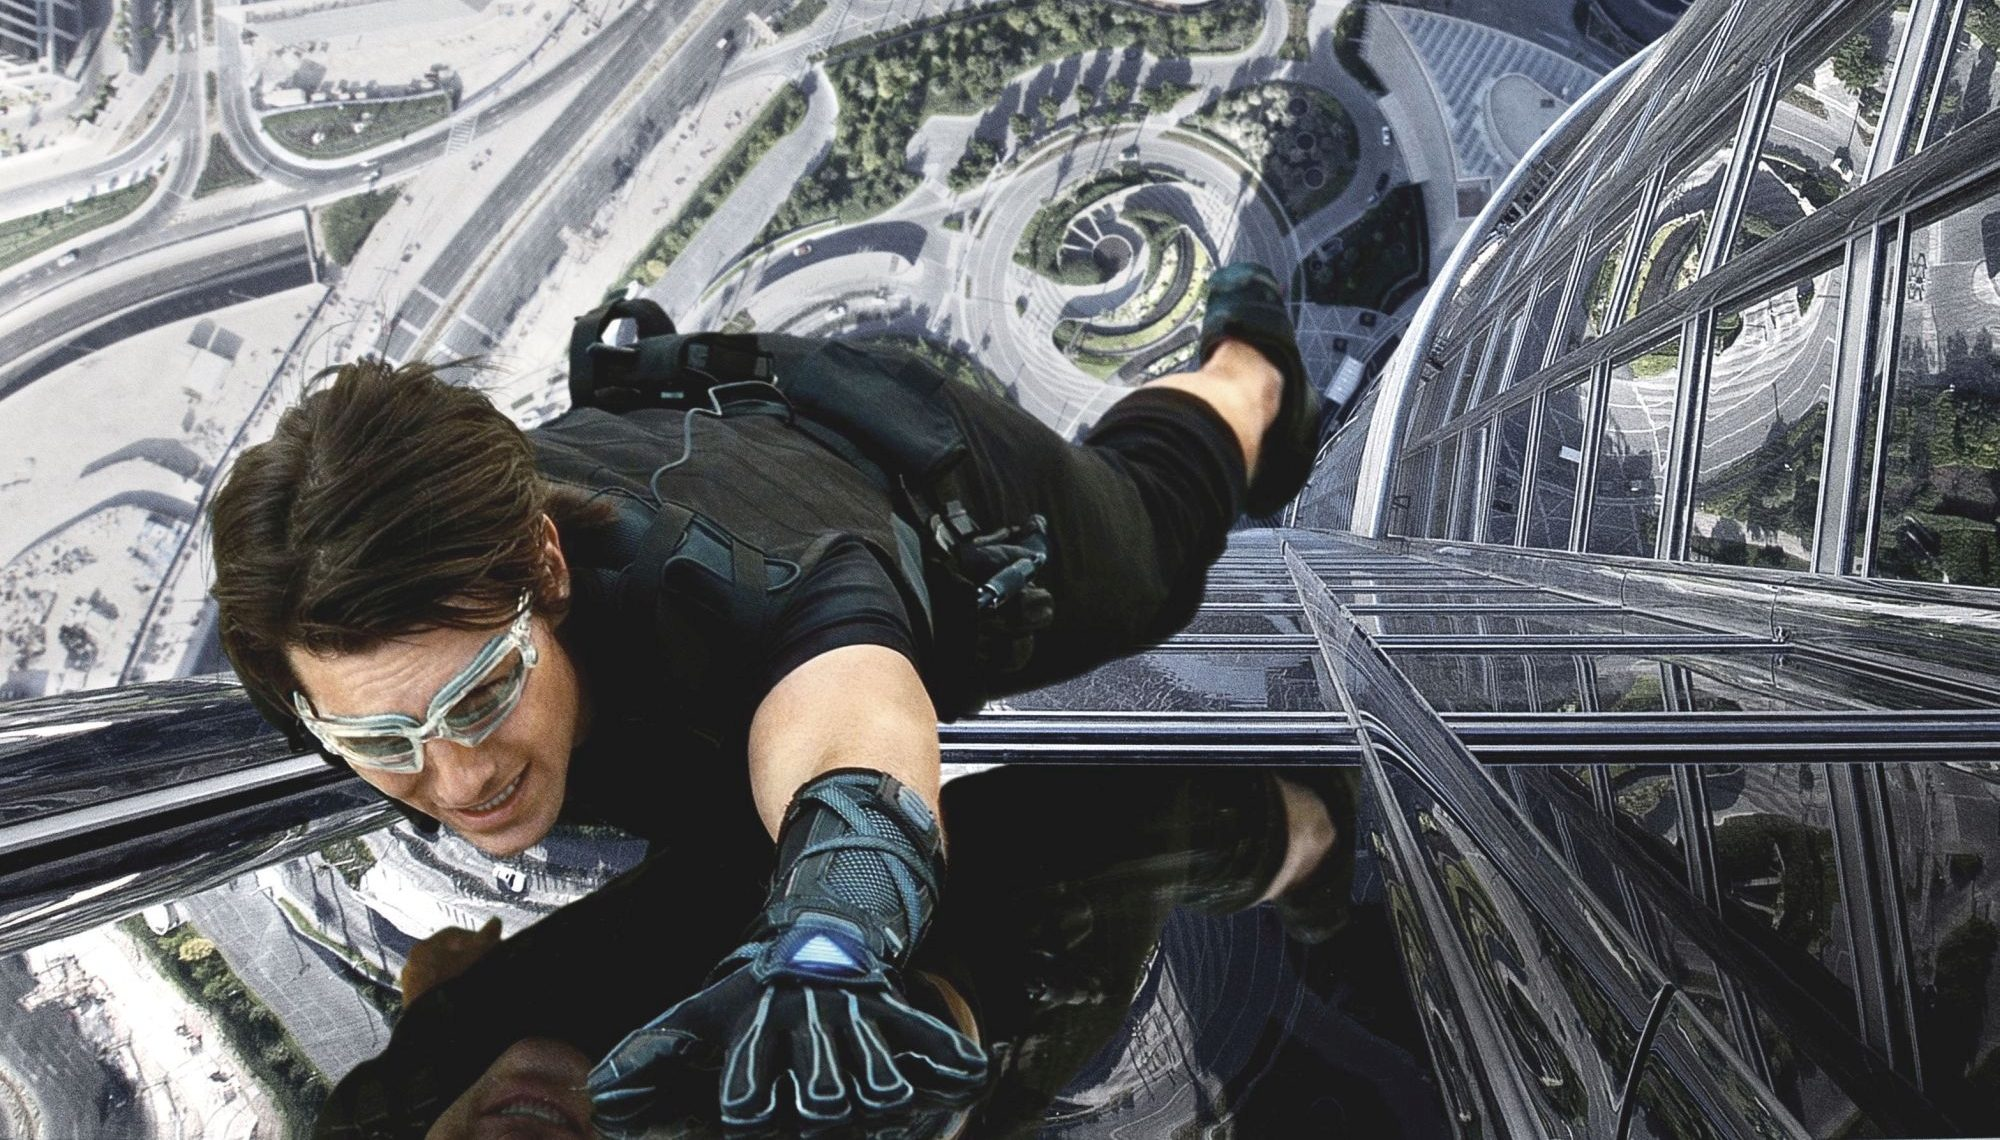 Filmszene aus Mission: Impossible - Phantom Protokoll